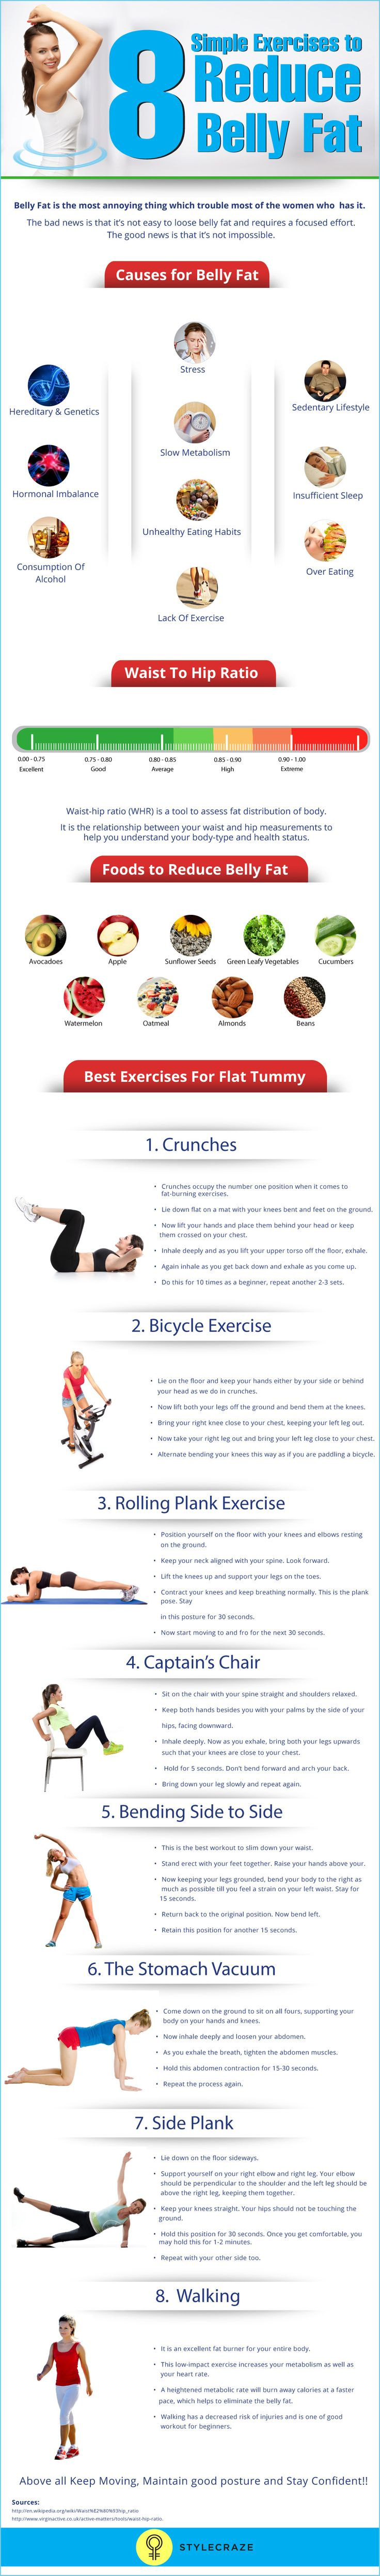 17 Simple Exercises To Reduce Belly Fat  Losing belly fat is really a big task. Including exercises to reduce belly fat for women helps the best. Here is how to lose stomach fat with these simple exercises